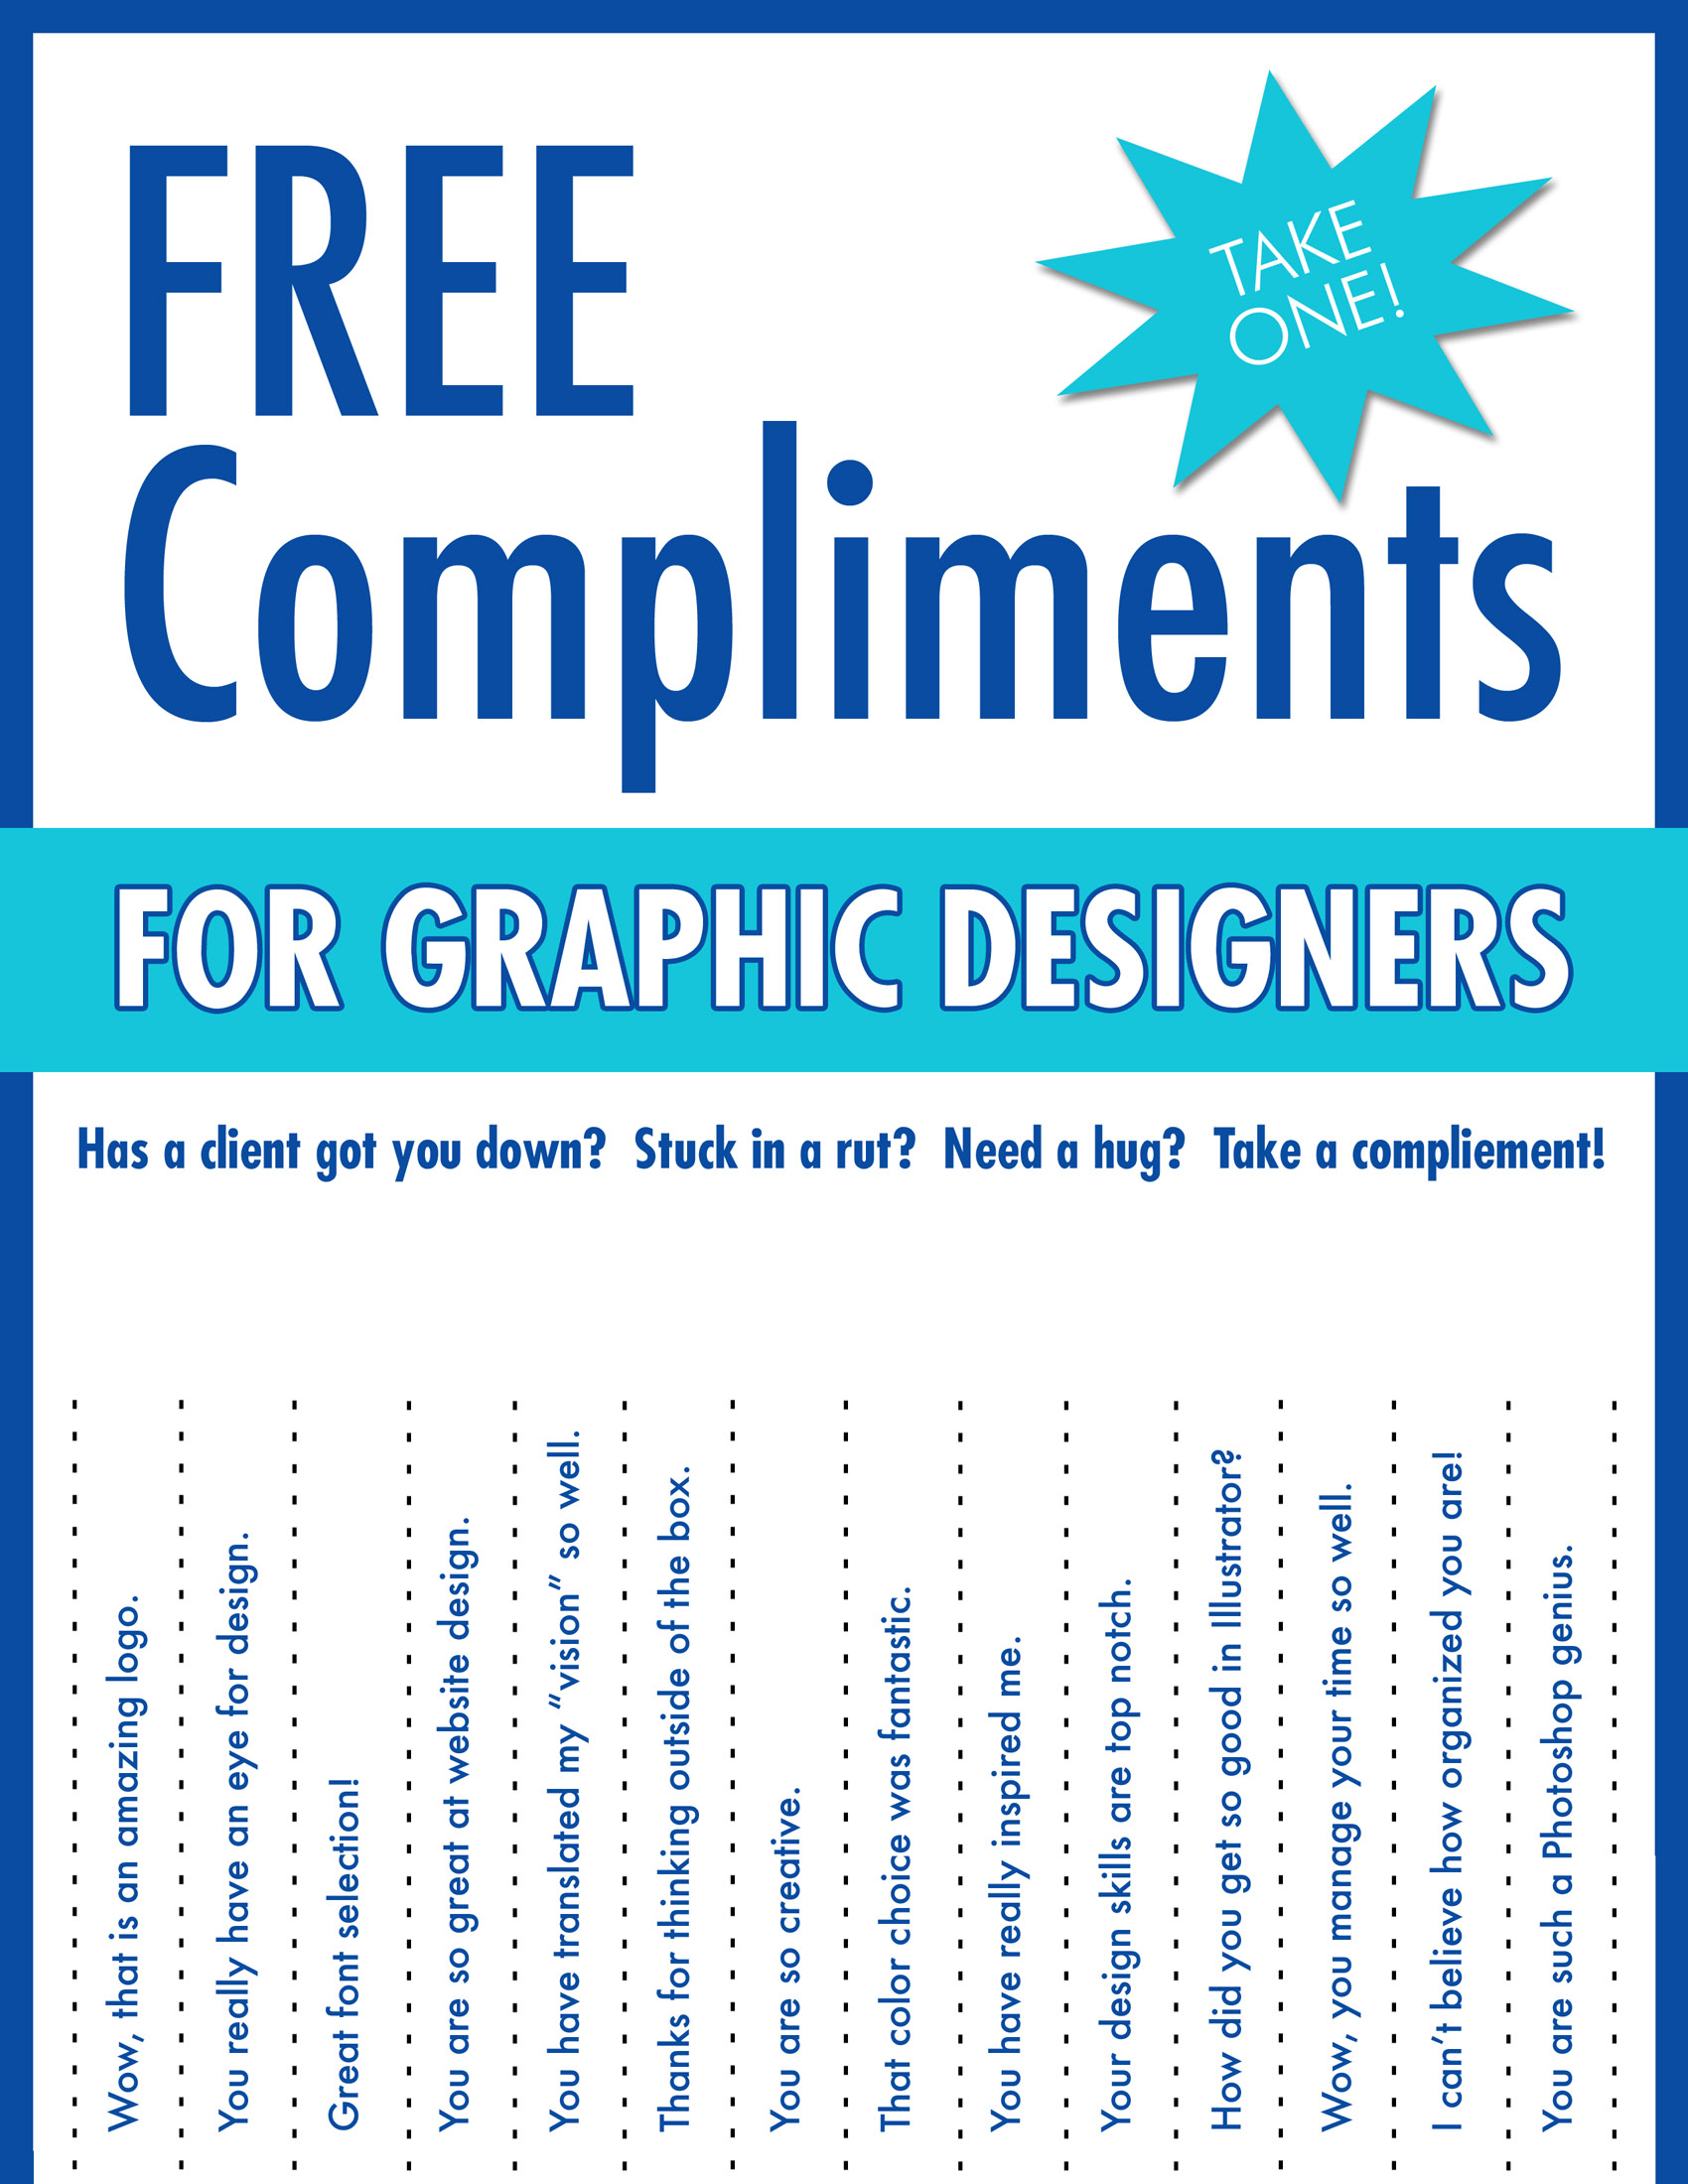 How To Compliment A Graphic Designer